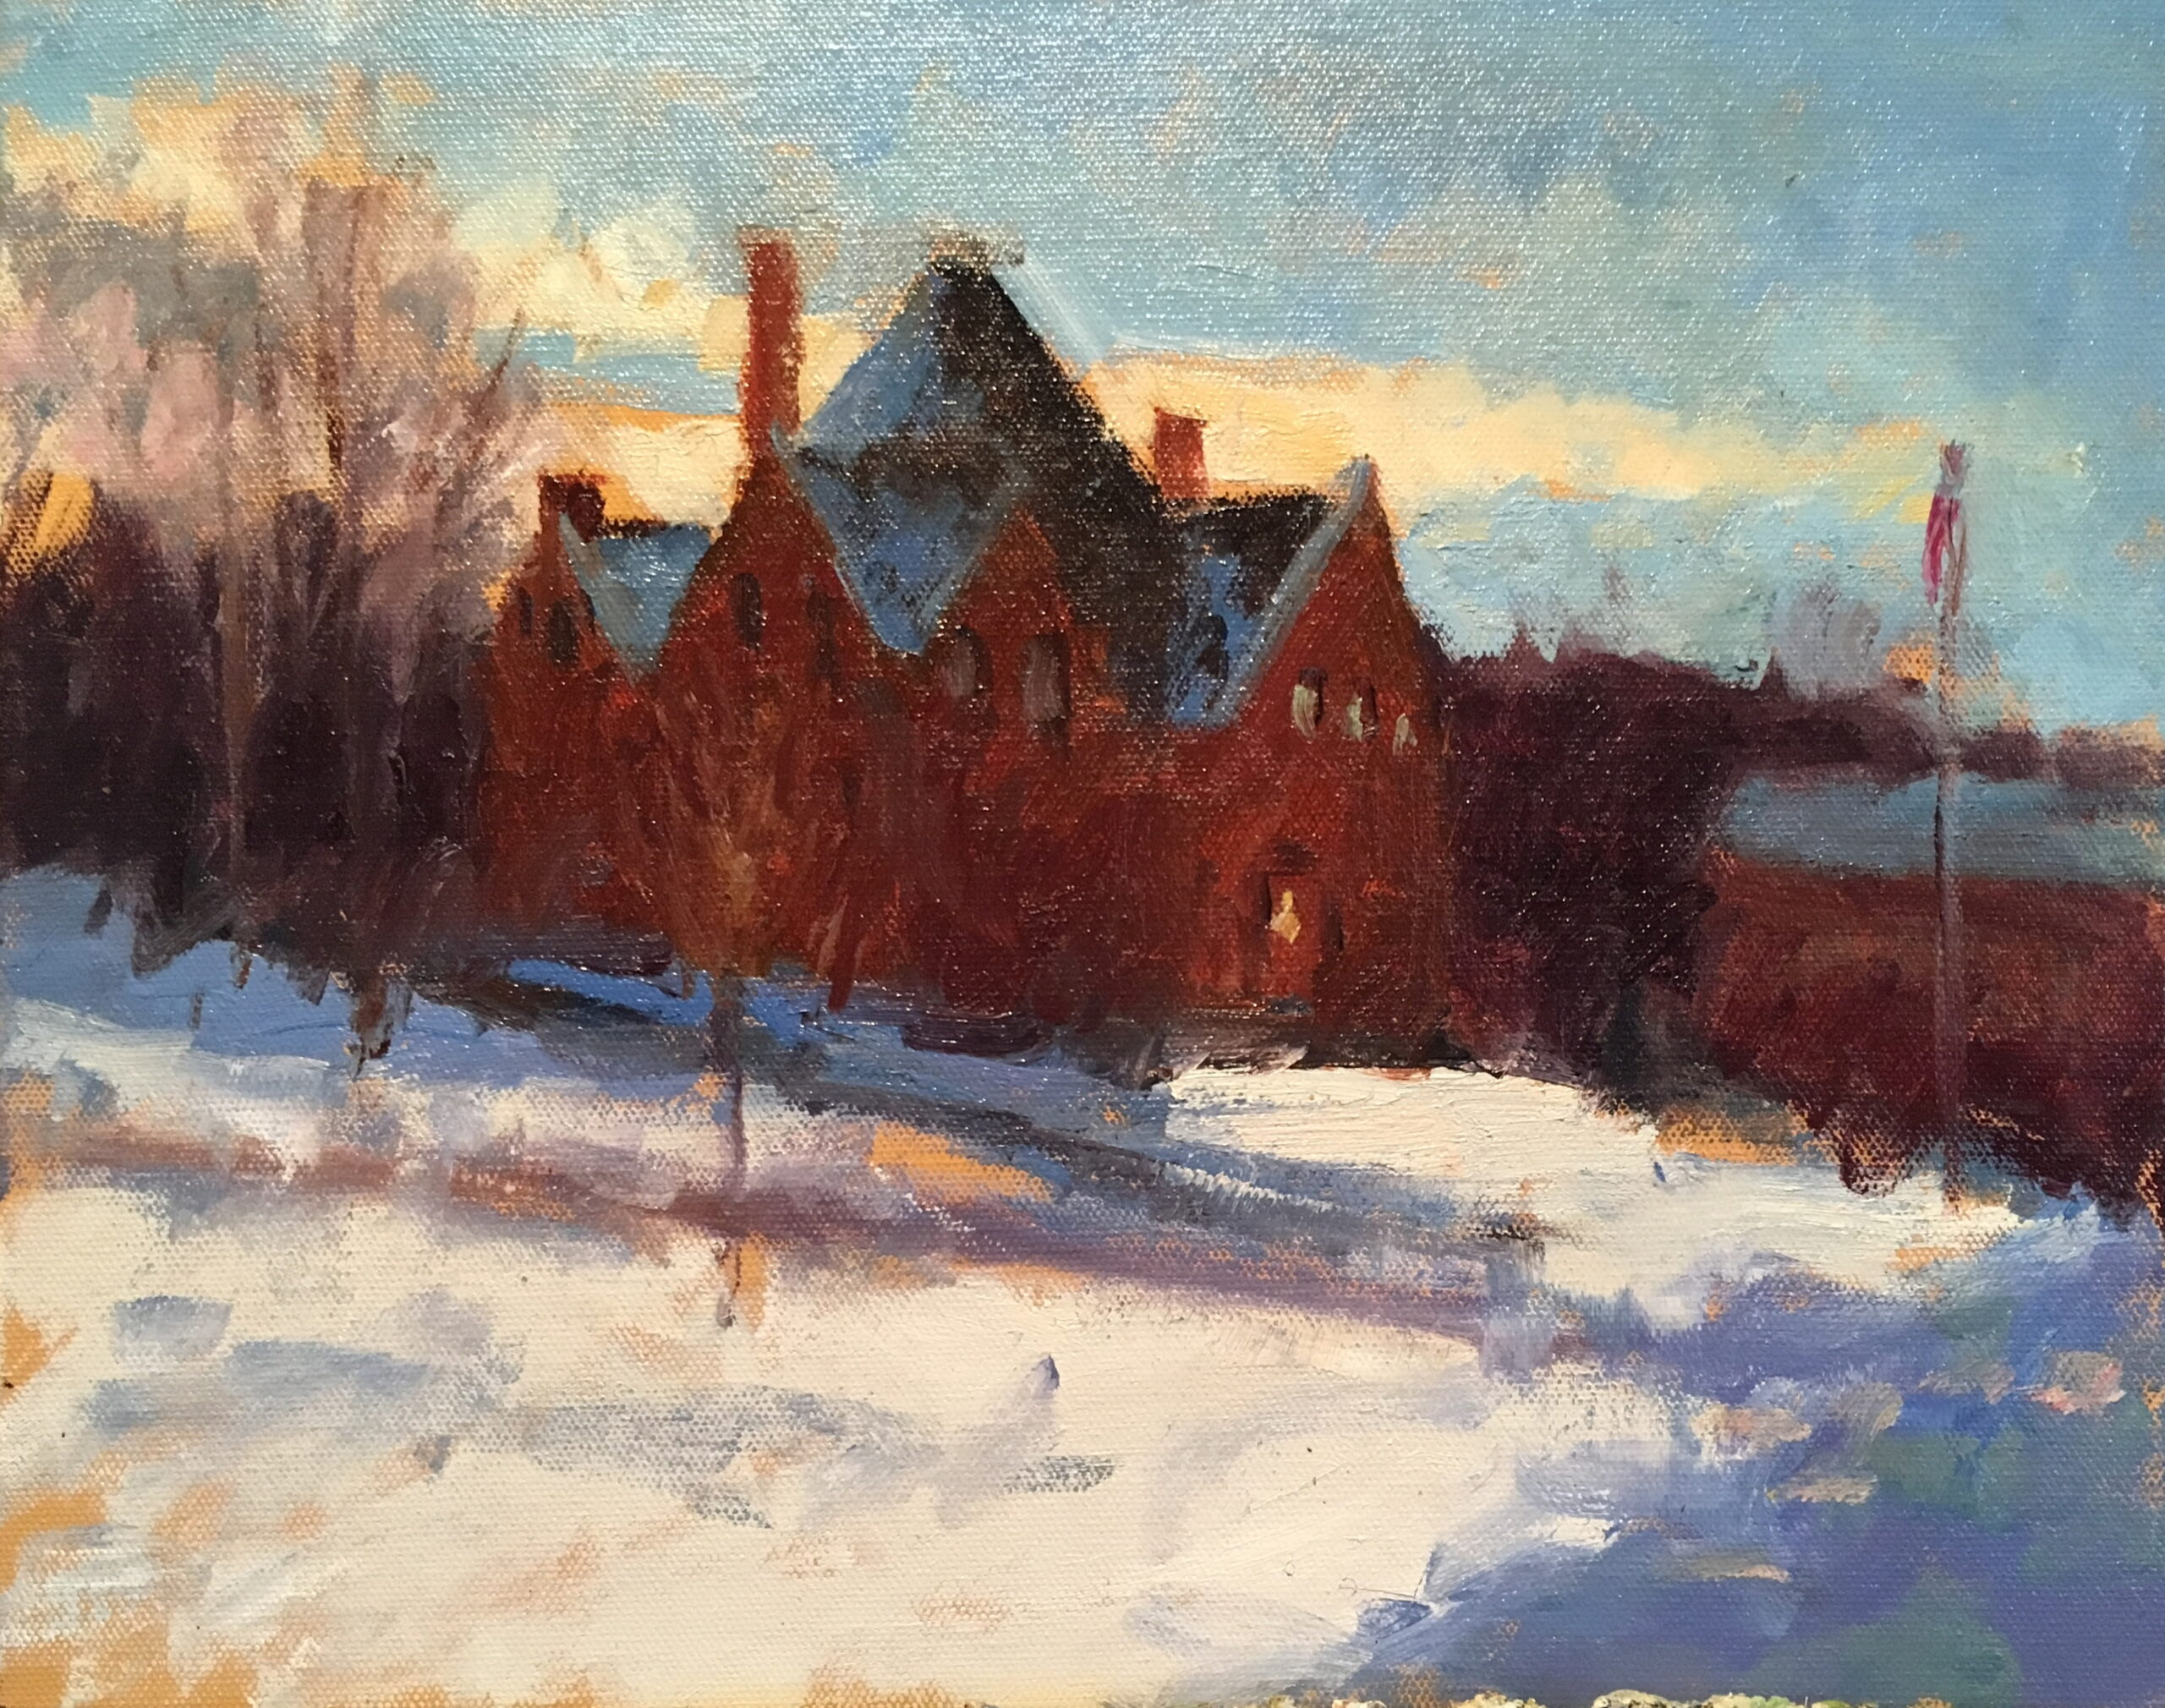 Library in Winter, Oil on Canvas on Panel, 11 x 14 Inches, by Susan Grisell, $300